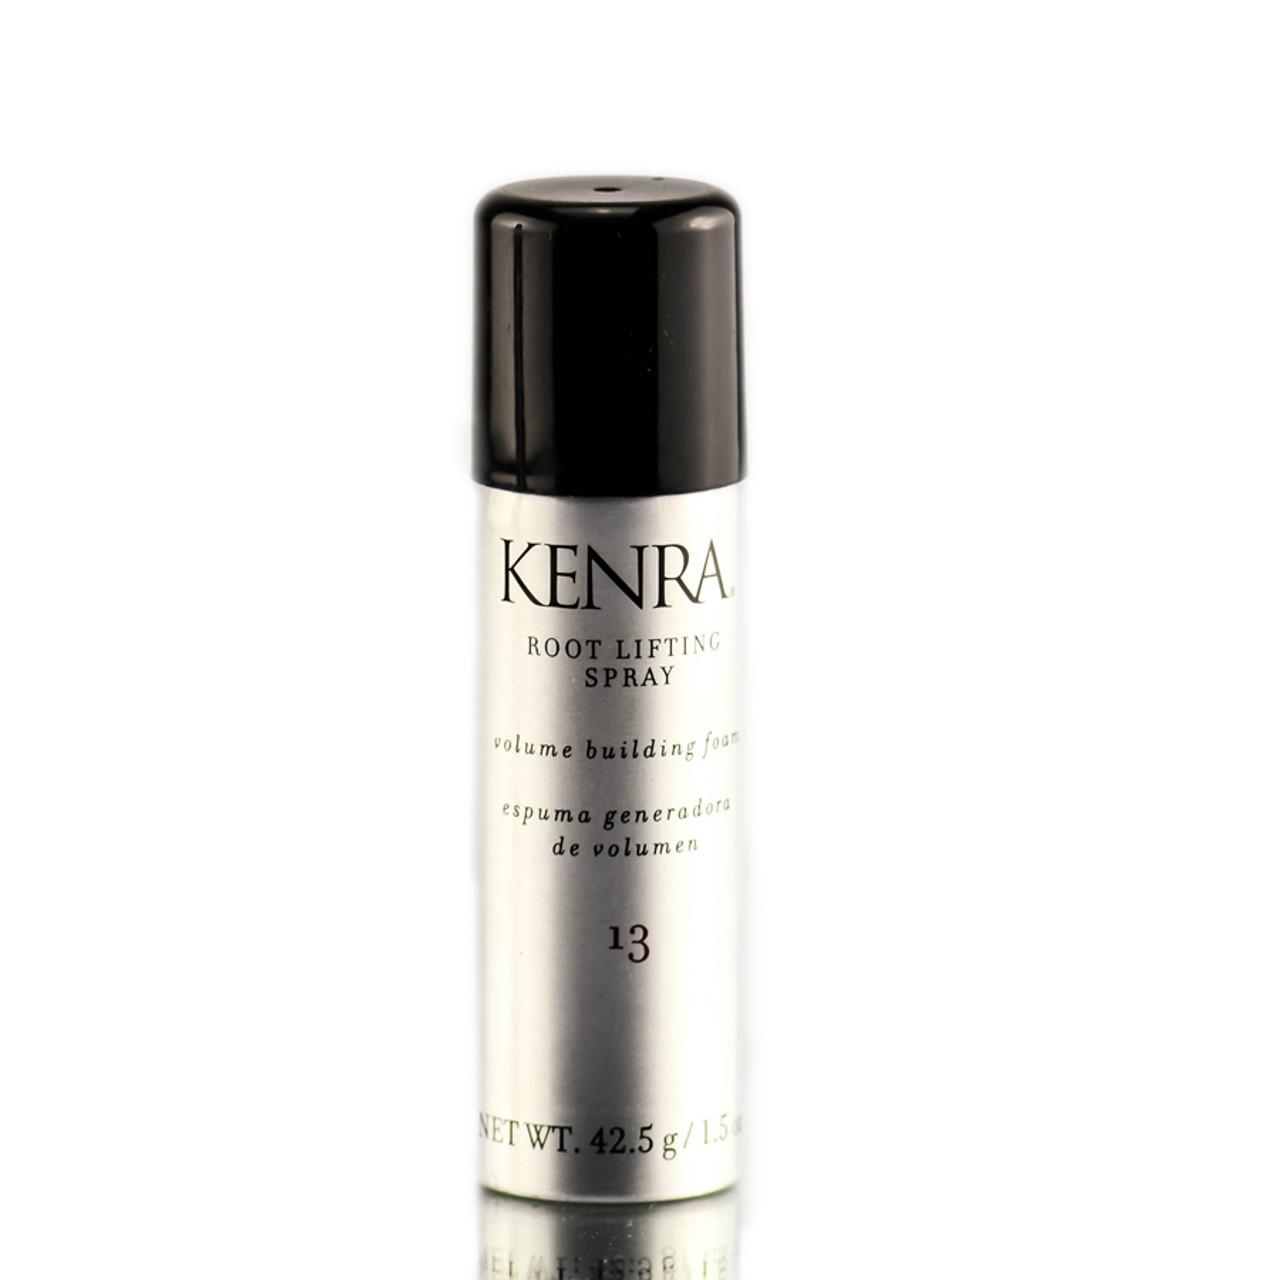 Root Lifting Spray by kenra #19